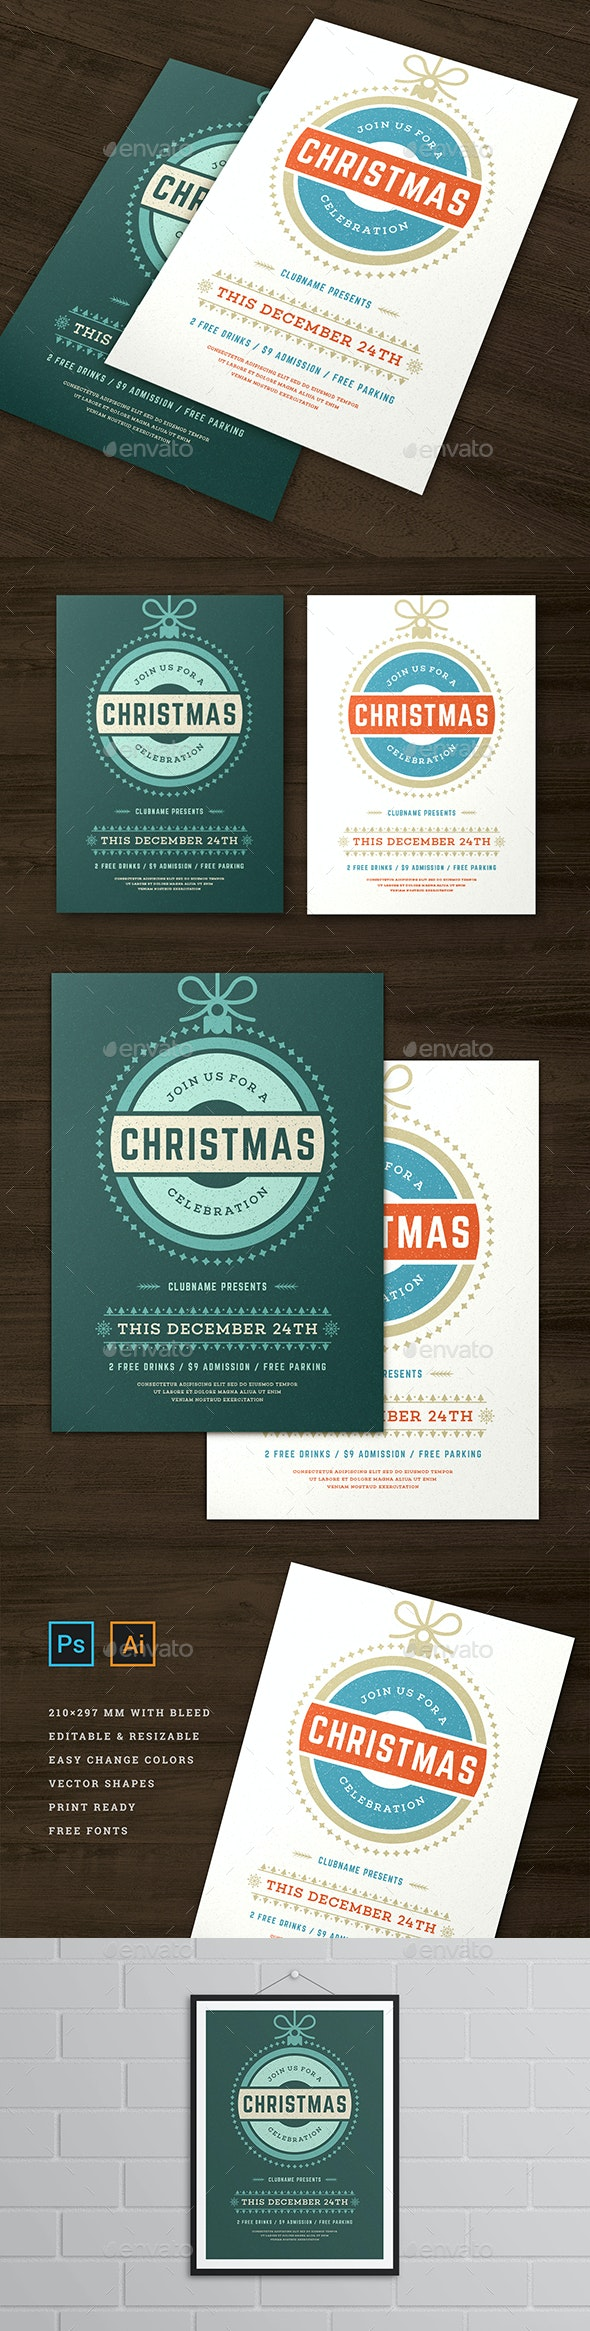 Christmas Party Flyer Invitation Template - Flyers Print Templates